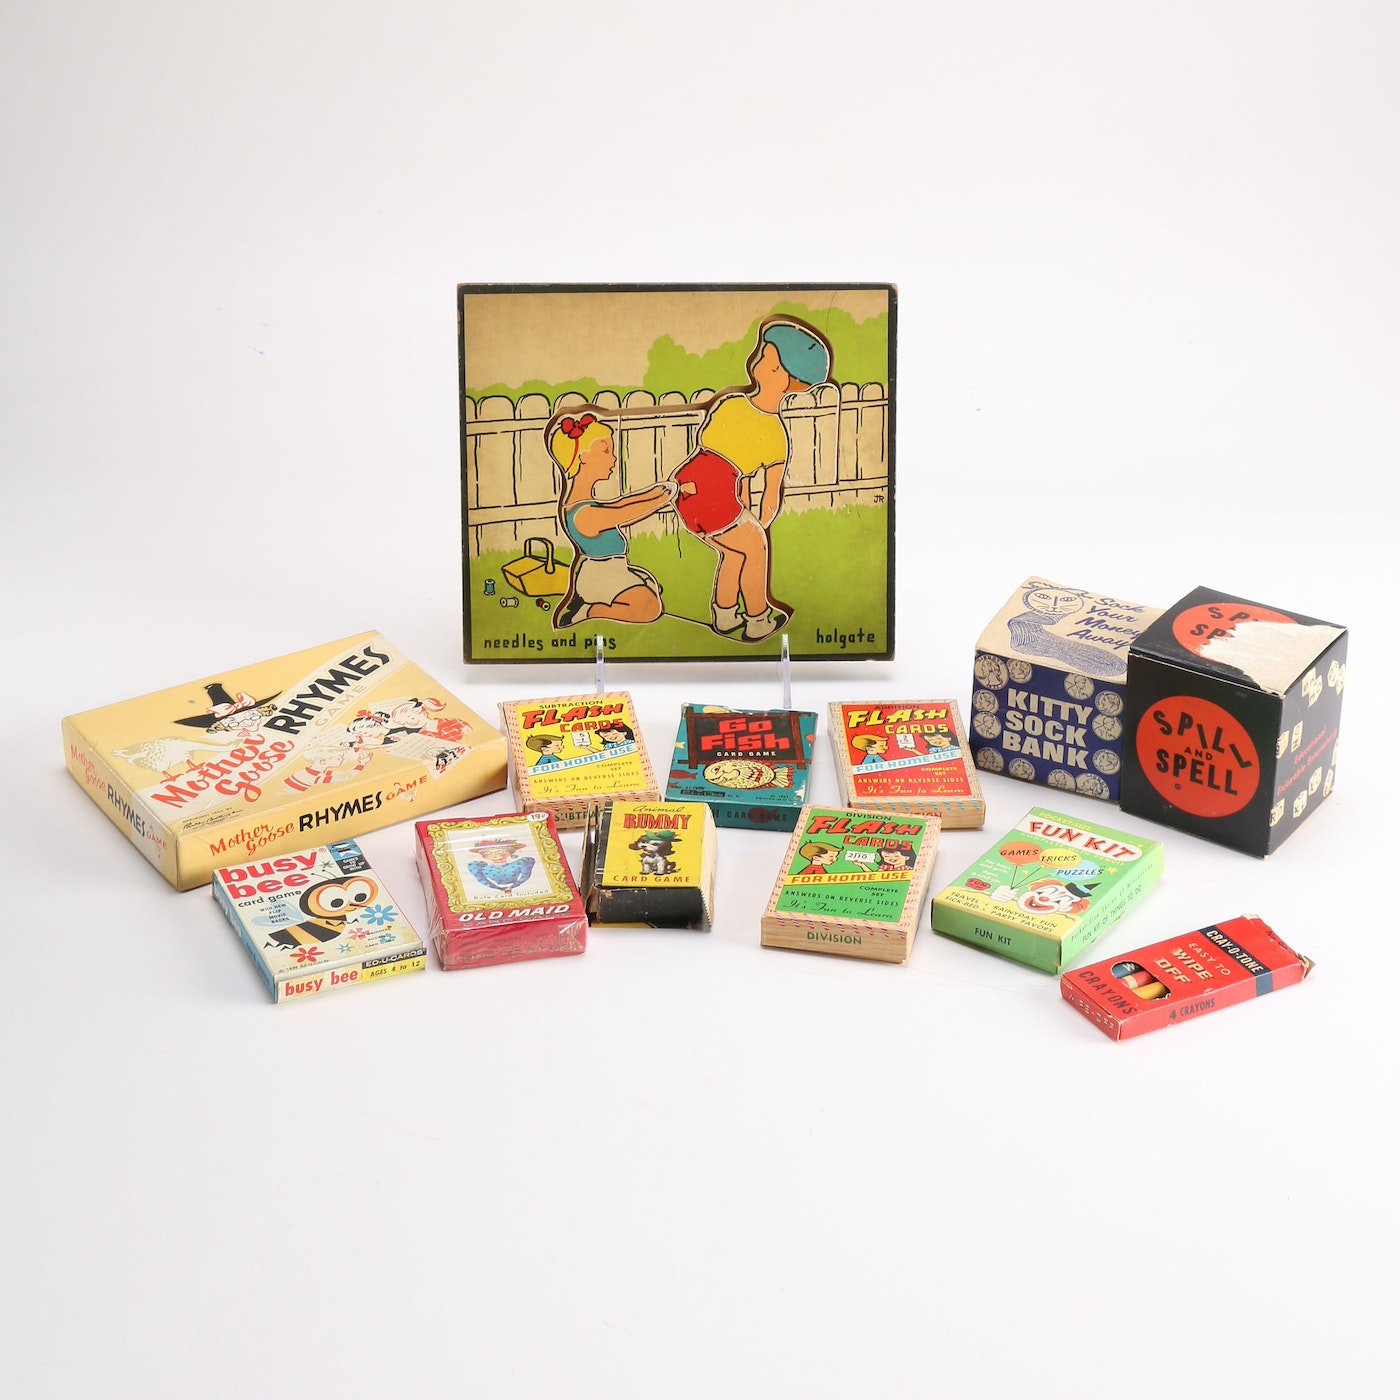 Vintage Toys And Games : Vintage kids toys and games ebth